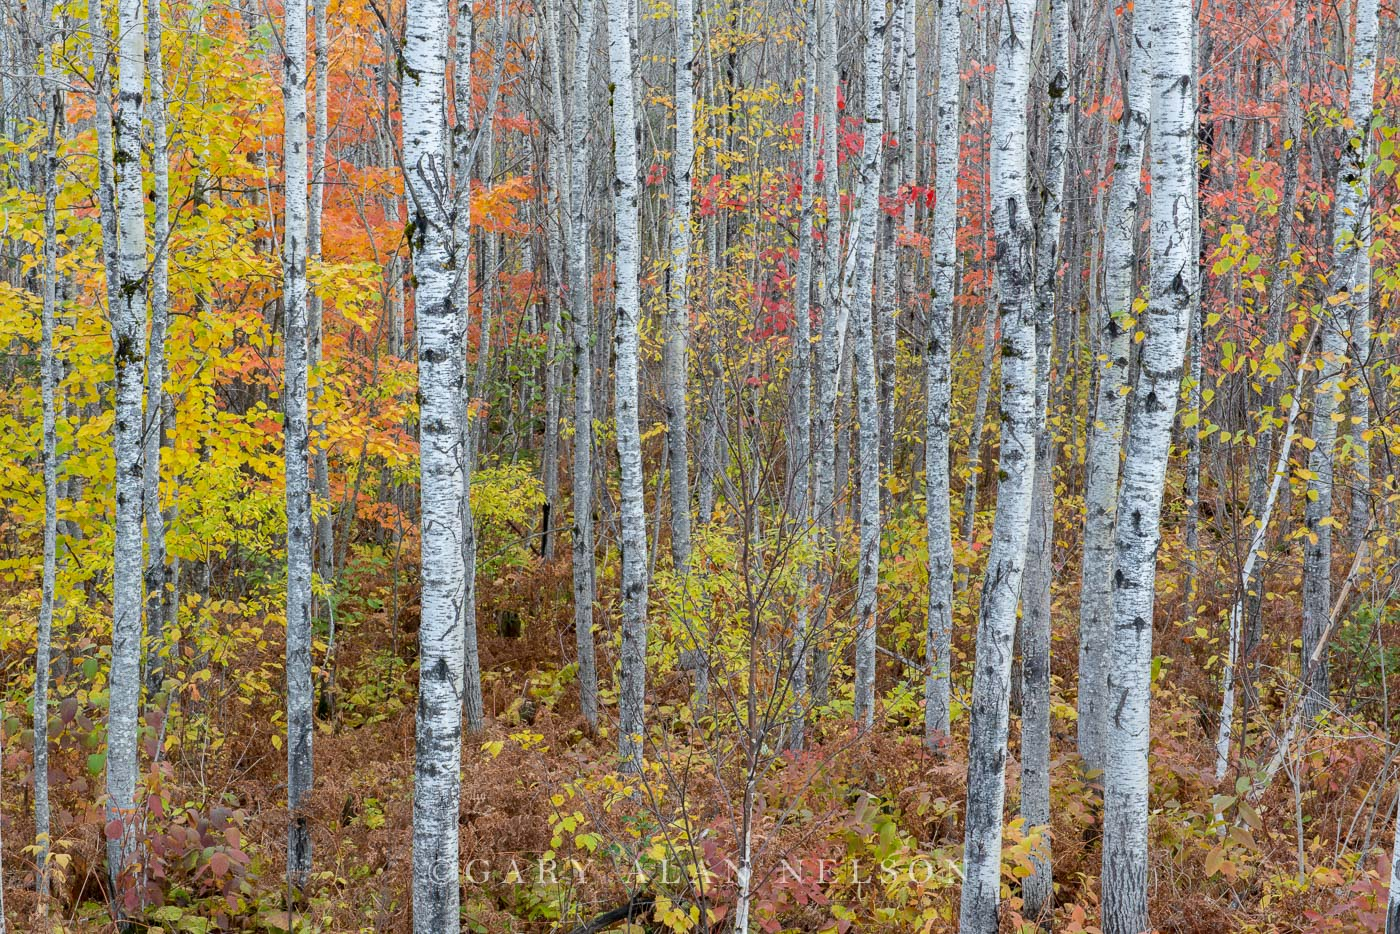 Aspens,Superior National Forest,autumn,minnesota, photo